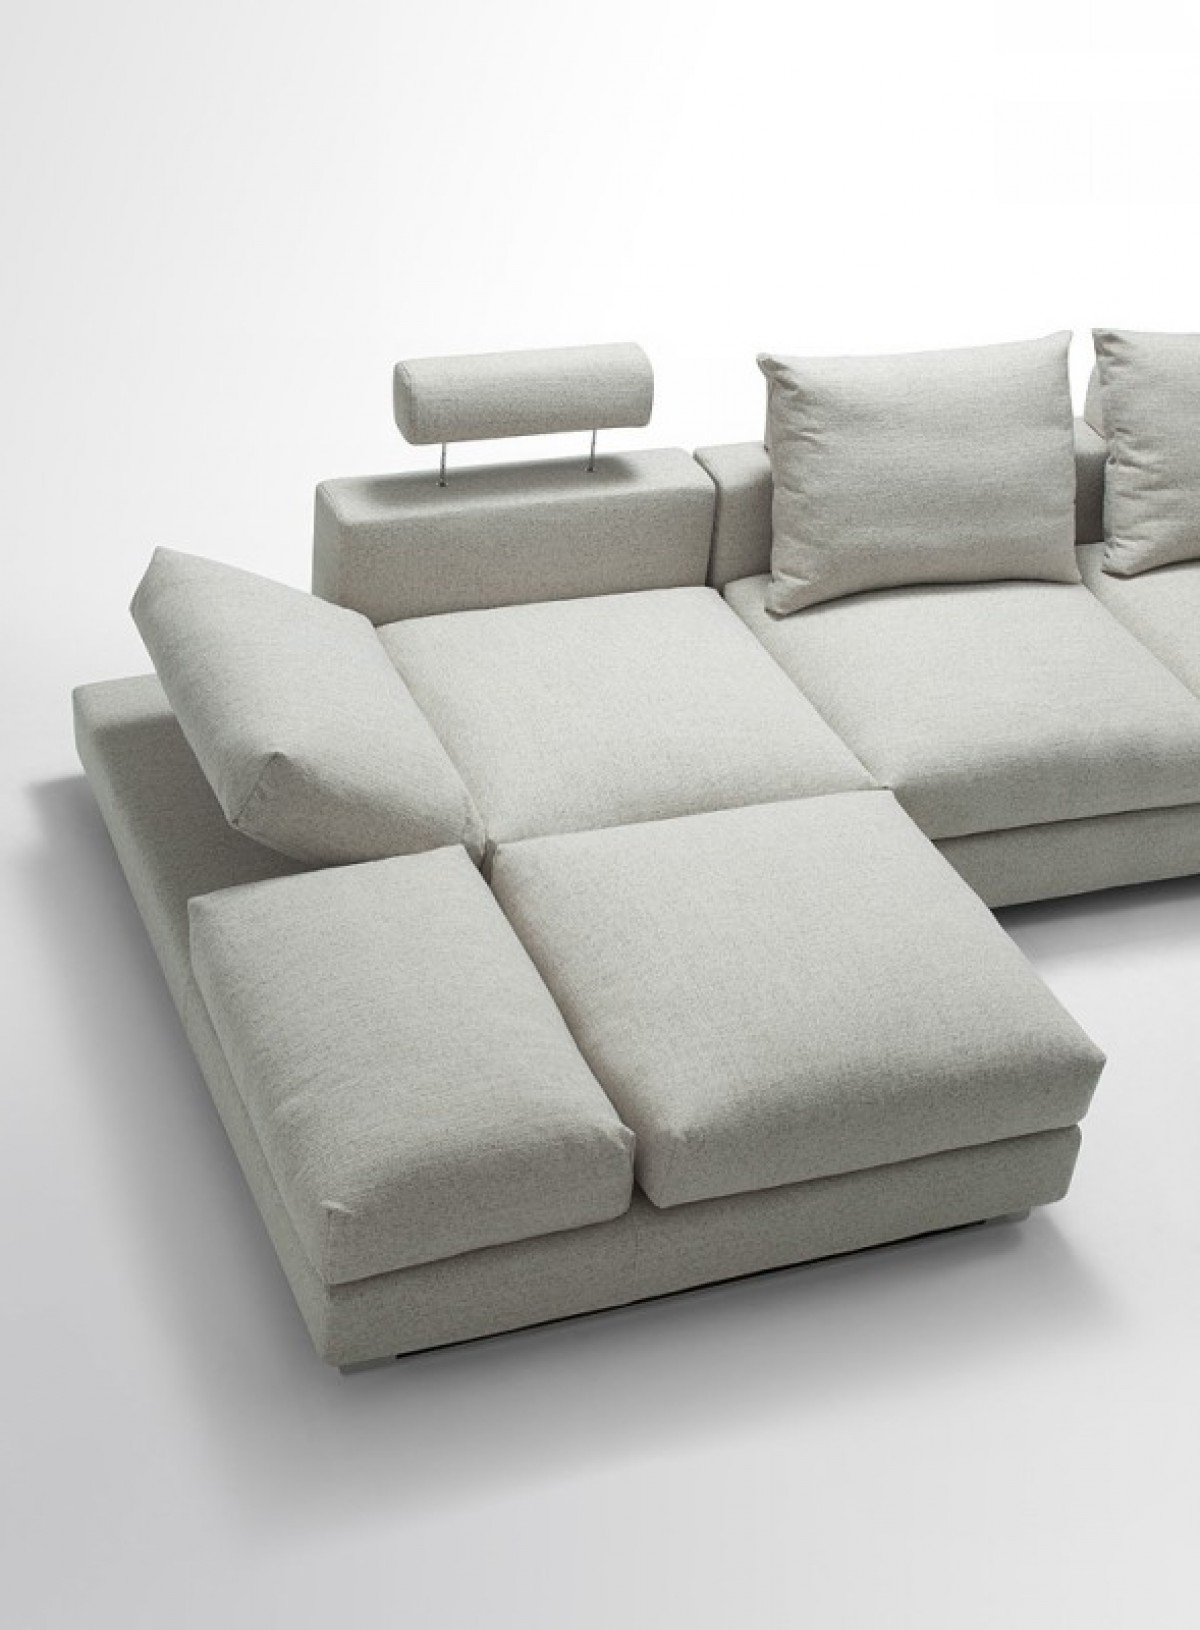 Well Liked Divani Casa Vasto – Modern Fabric Sectional Sofa With Down Feather In Down Feather Sectional Sofas (View 12 of 20)